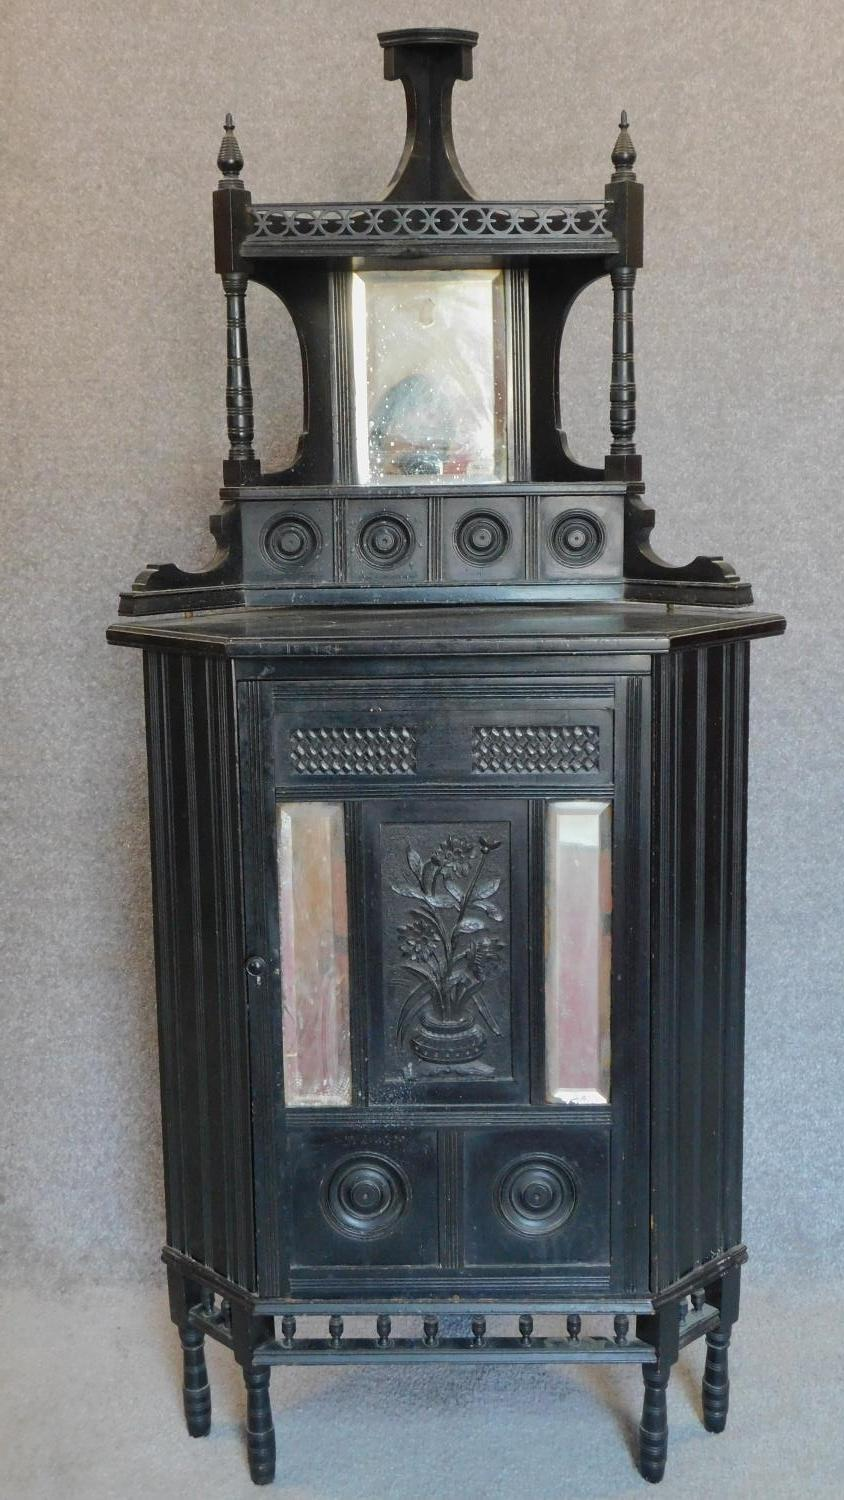 Lot 17 - A late 19th century ebonised corner cabinet with mirrored back and carved panels in the aesthetic